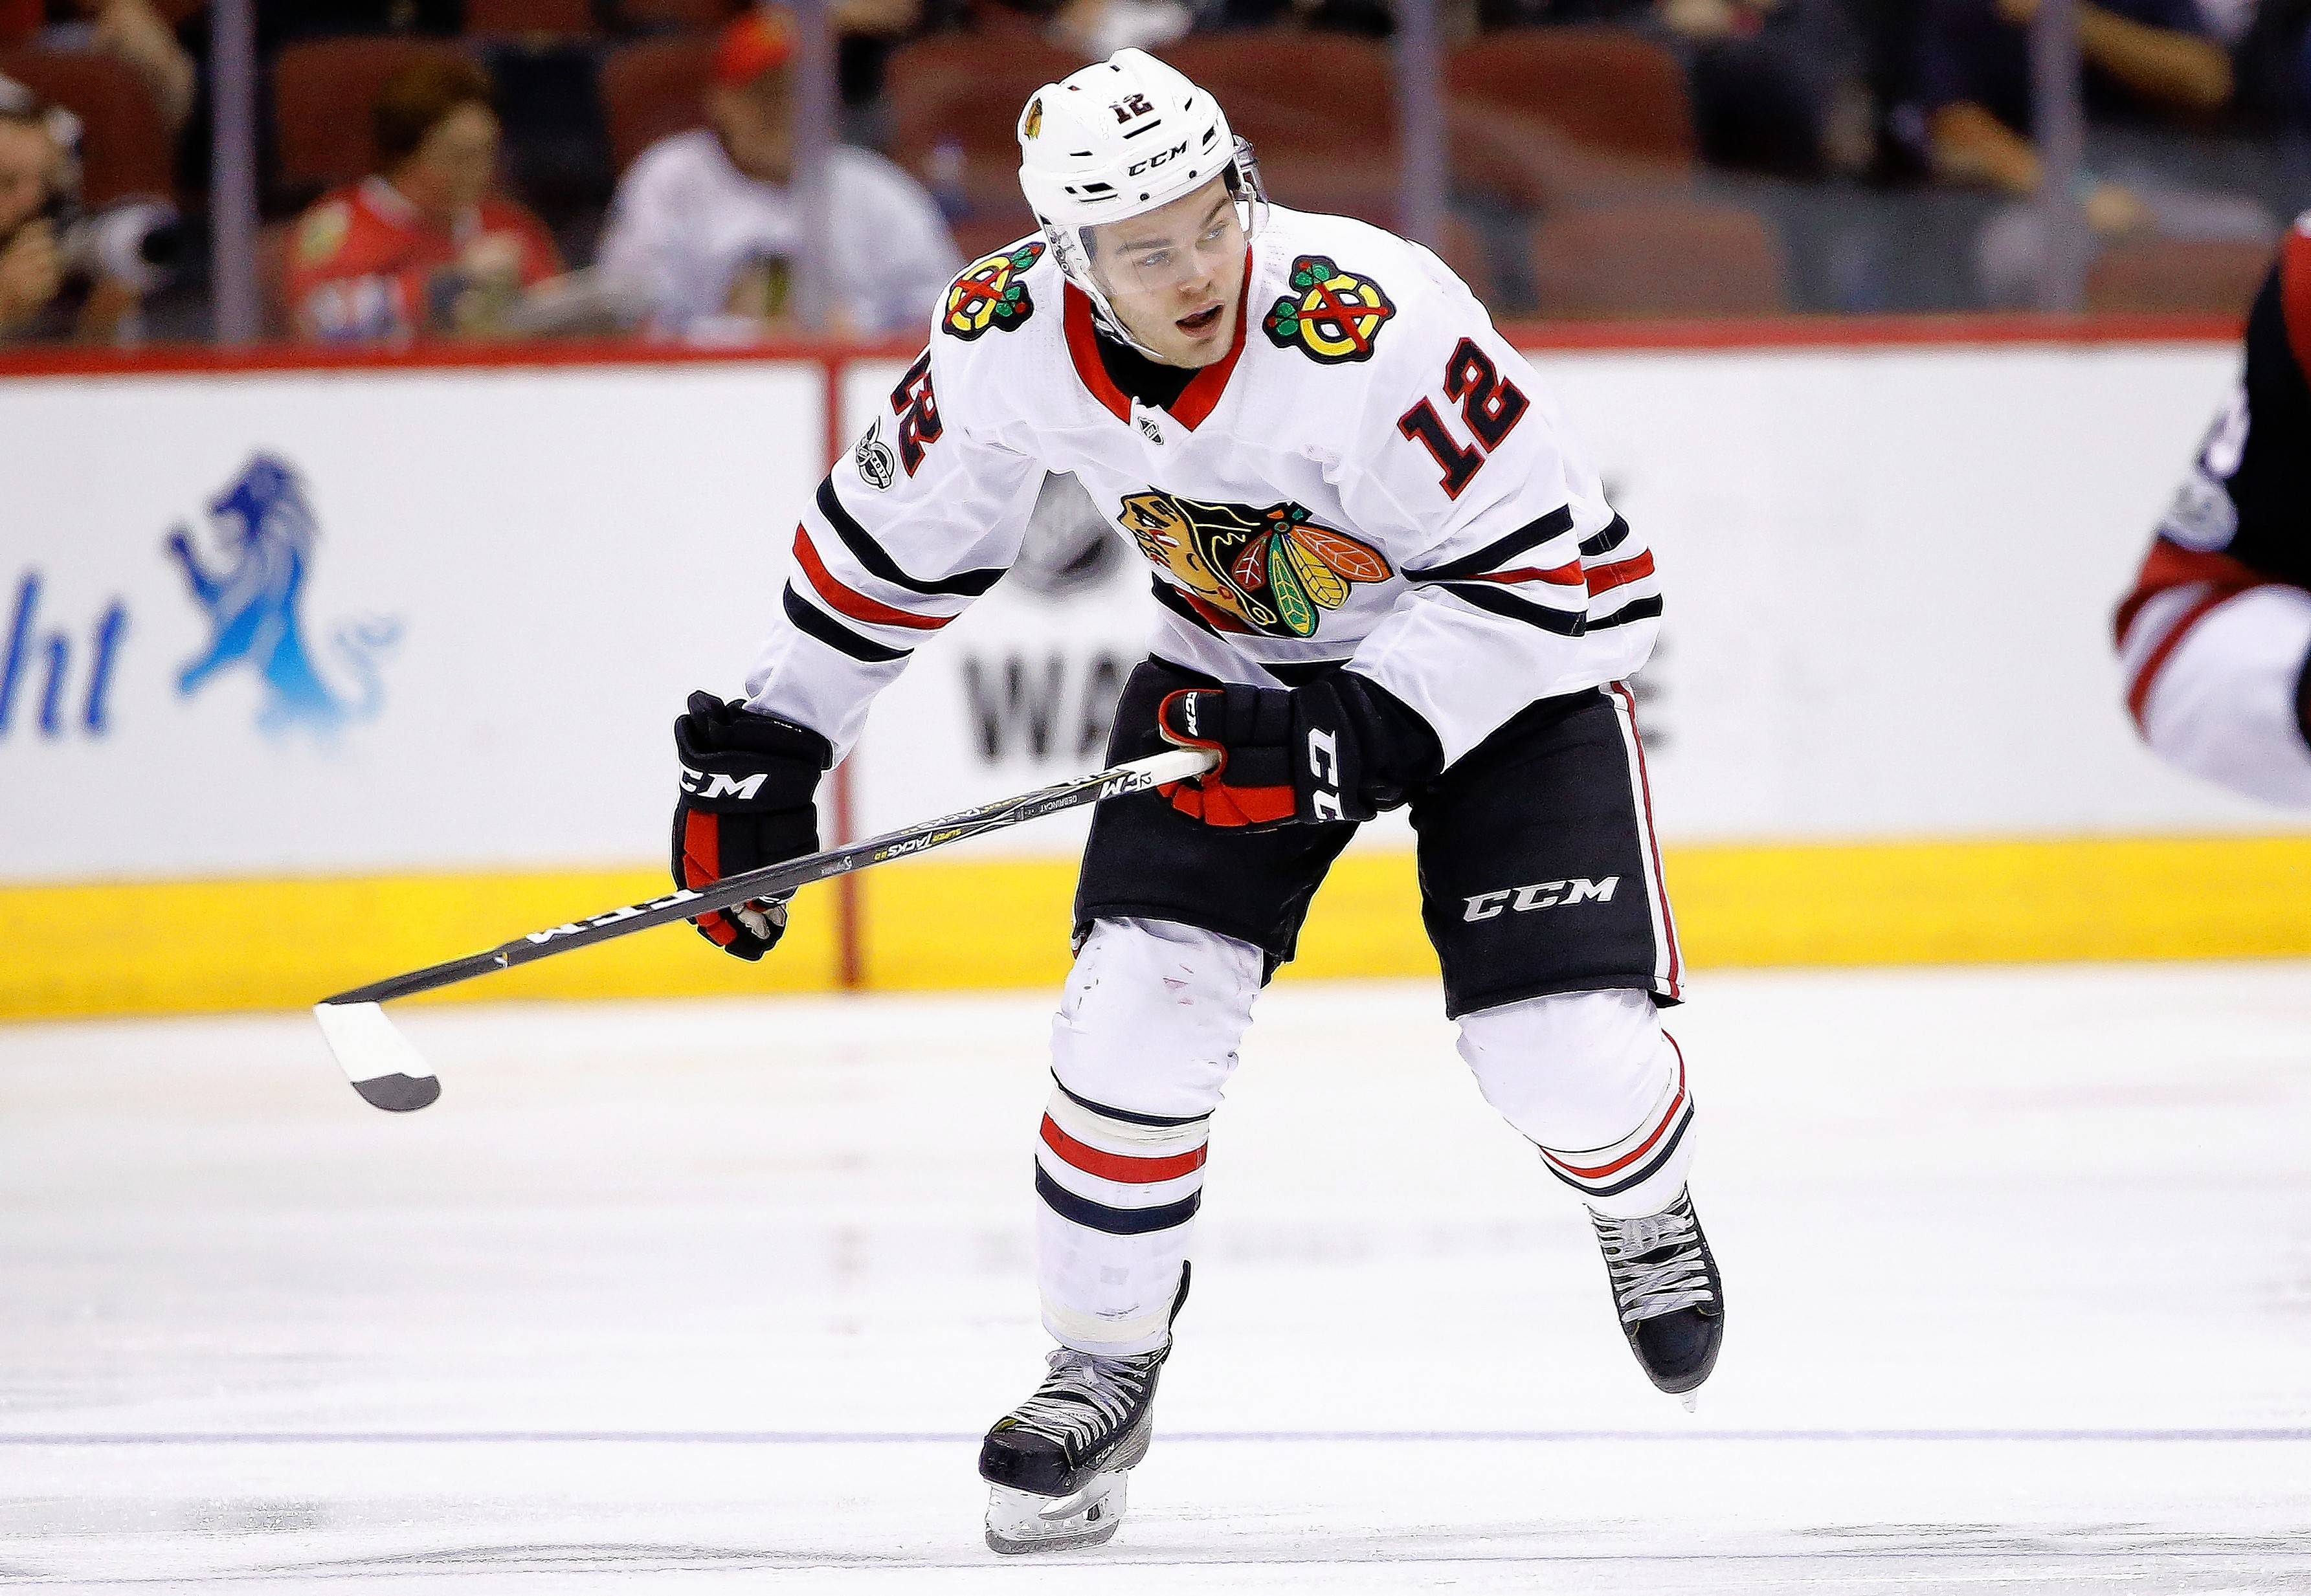 Alex DeBrincat's ability to make plays and be in the right spot has impressed Chicago Blackhawks coach Joel Quenneville.